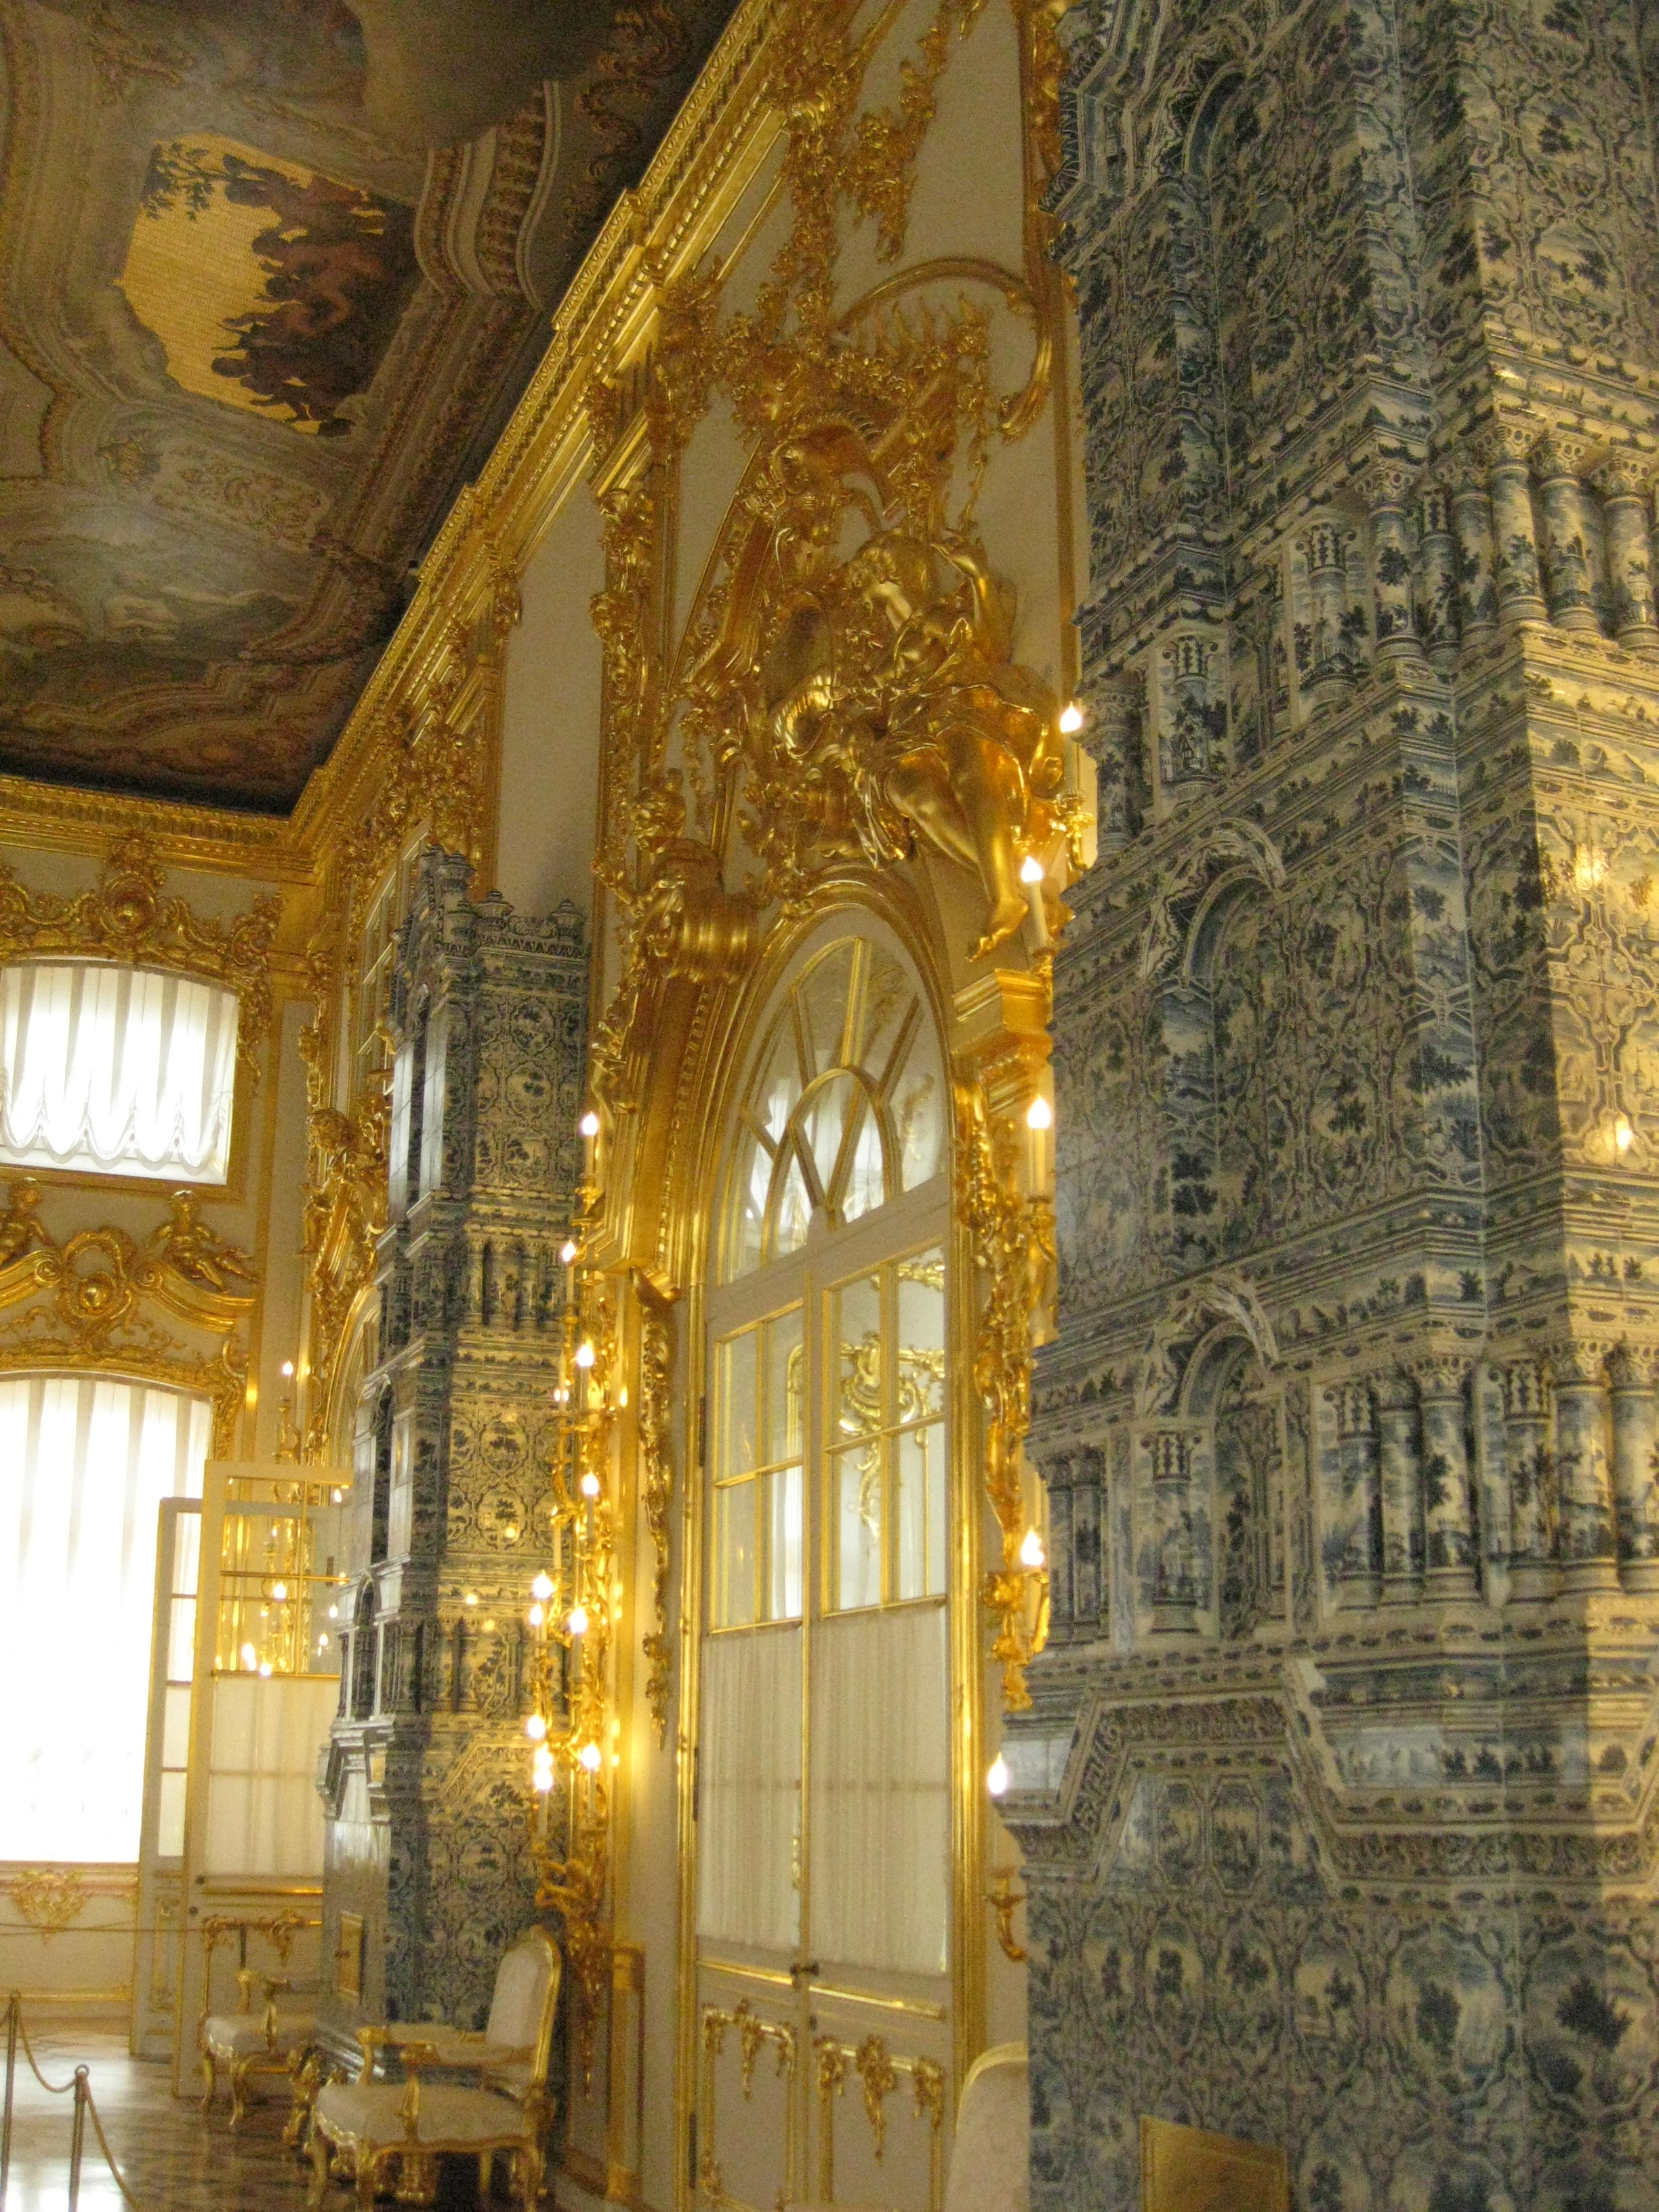 St Pete catherine's palace Russia